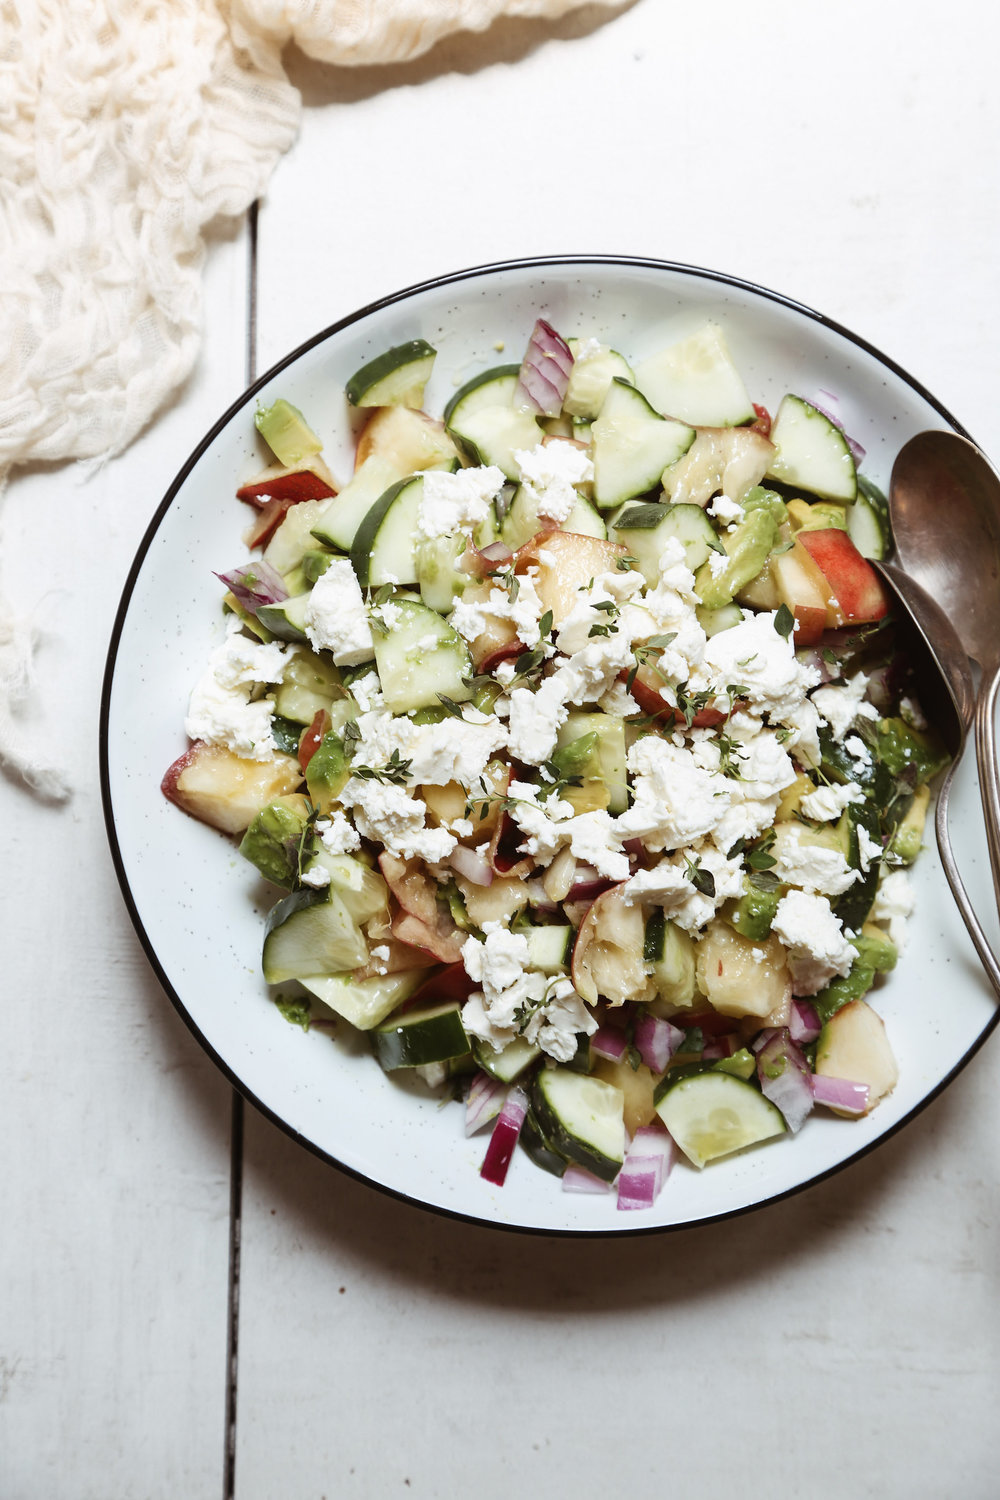 nectarine, cucumber and avocado salad-8.jpg